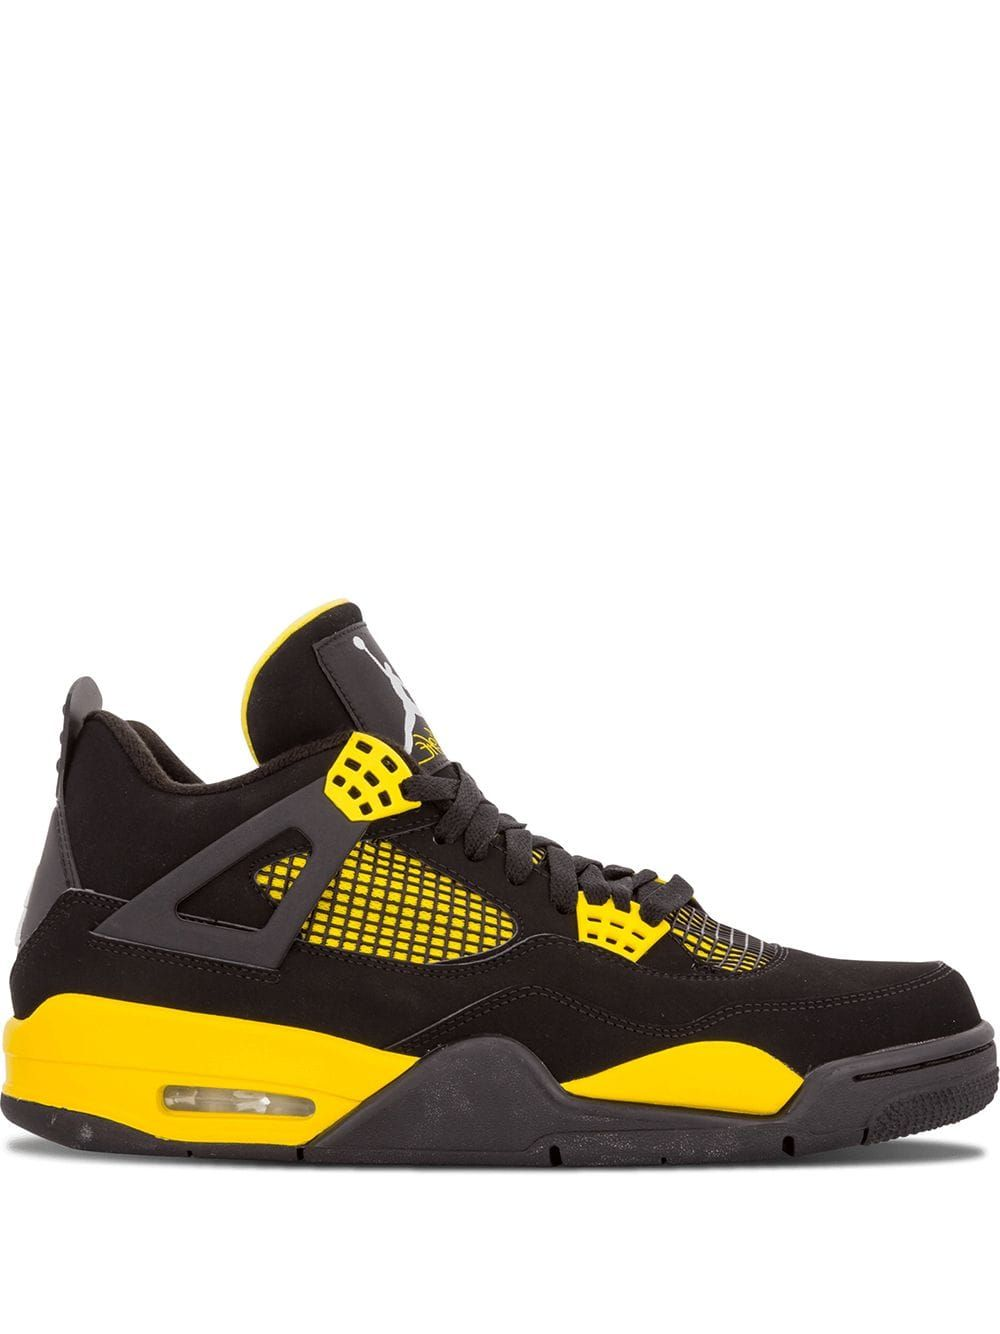 huge selection of a8b29 17591 JORDAN JORDAN AIR JORDAN 4 RETRO SNEAKERS - BLACK.  jordan  shoes